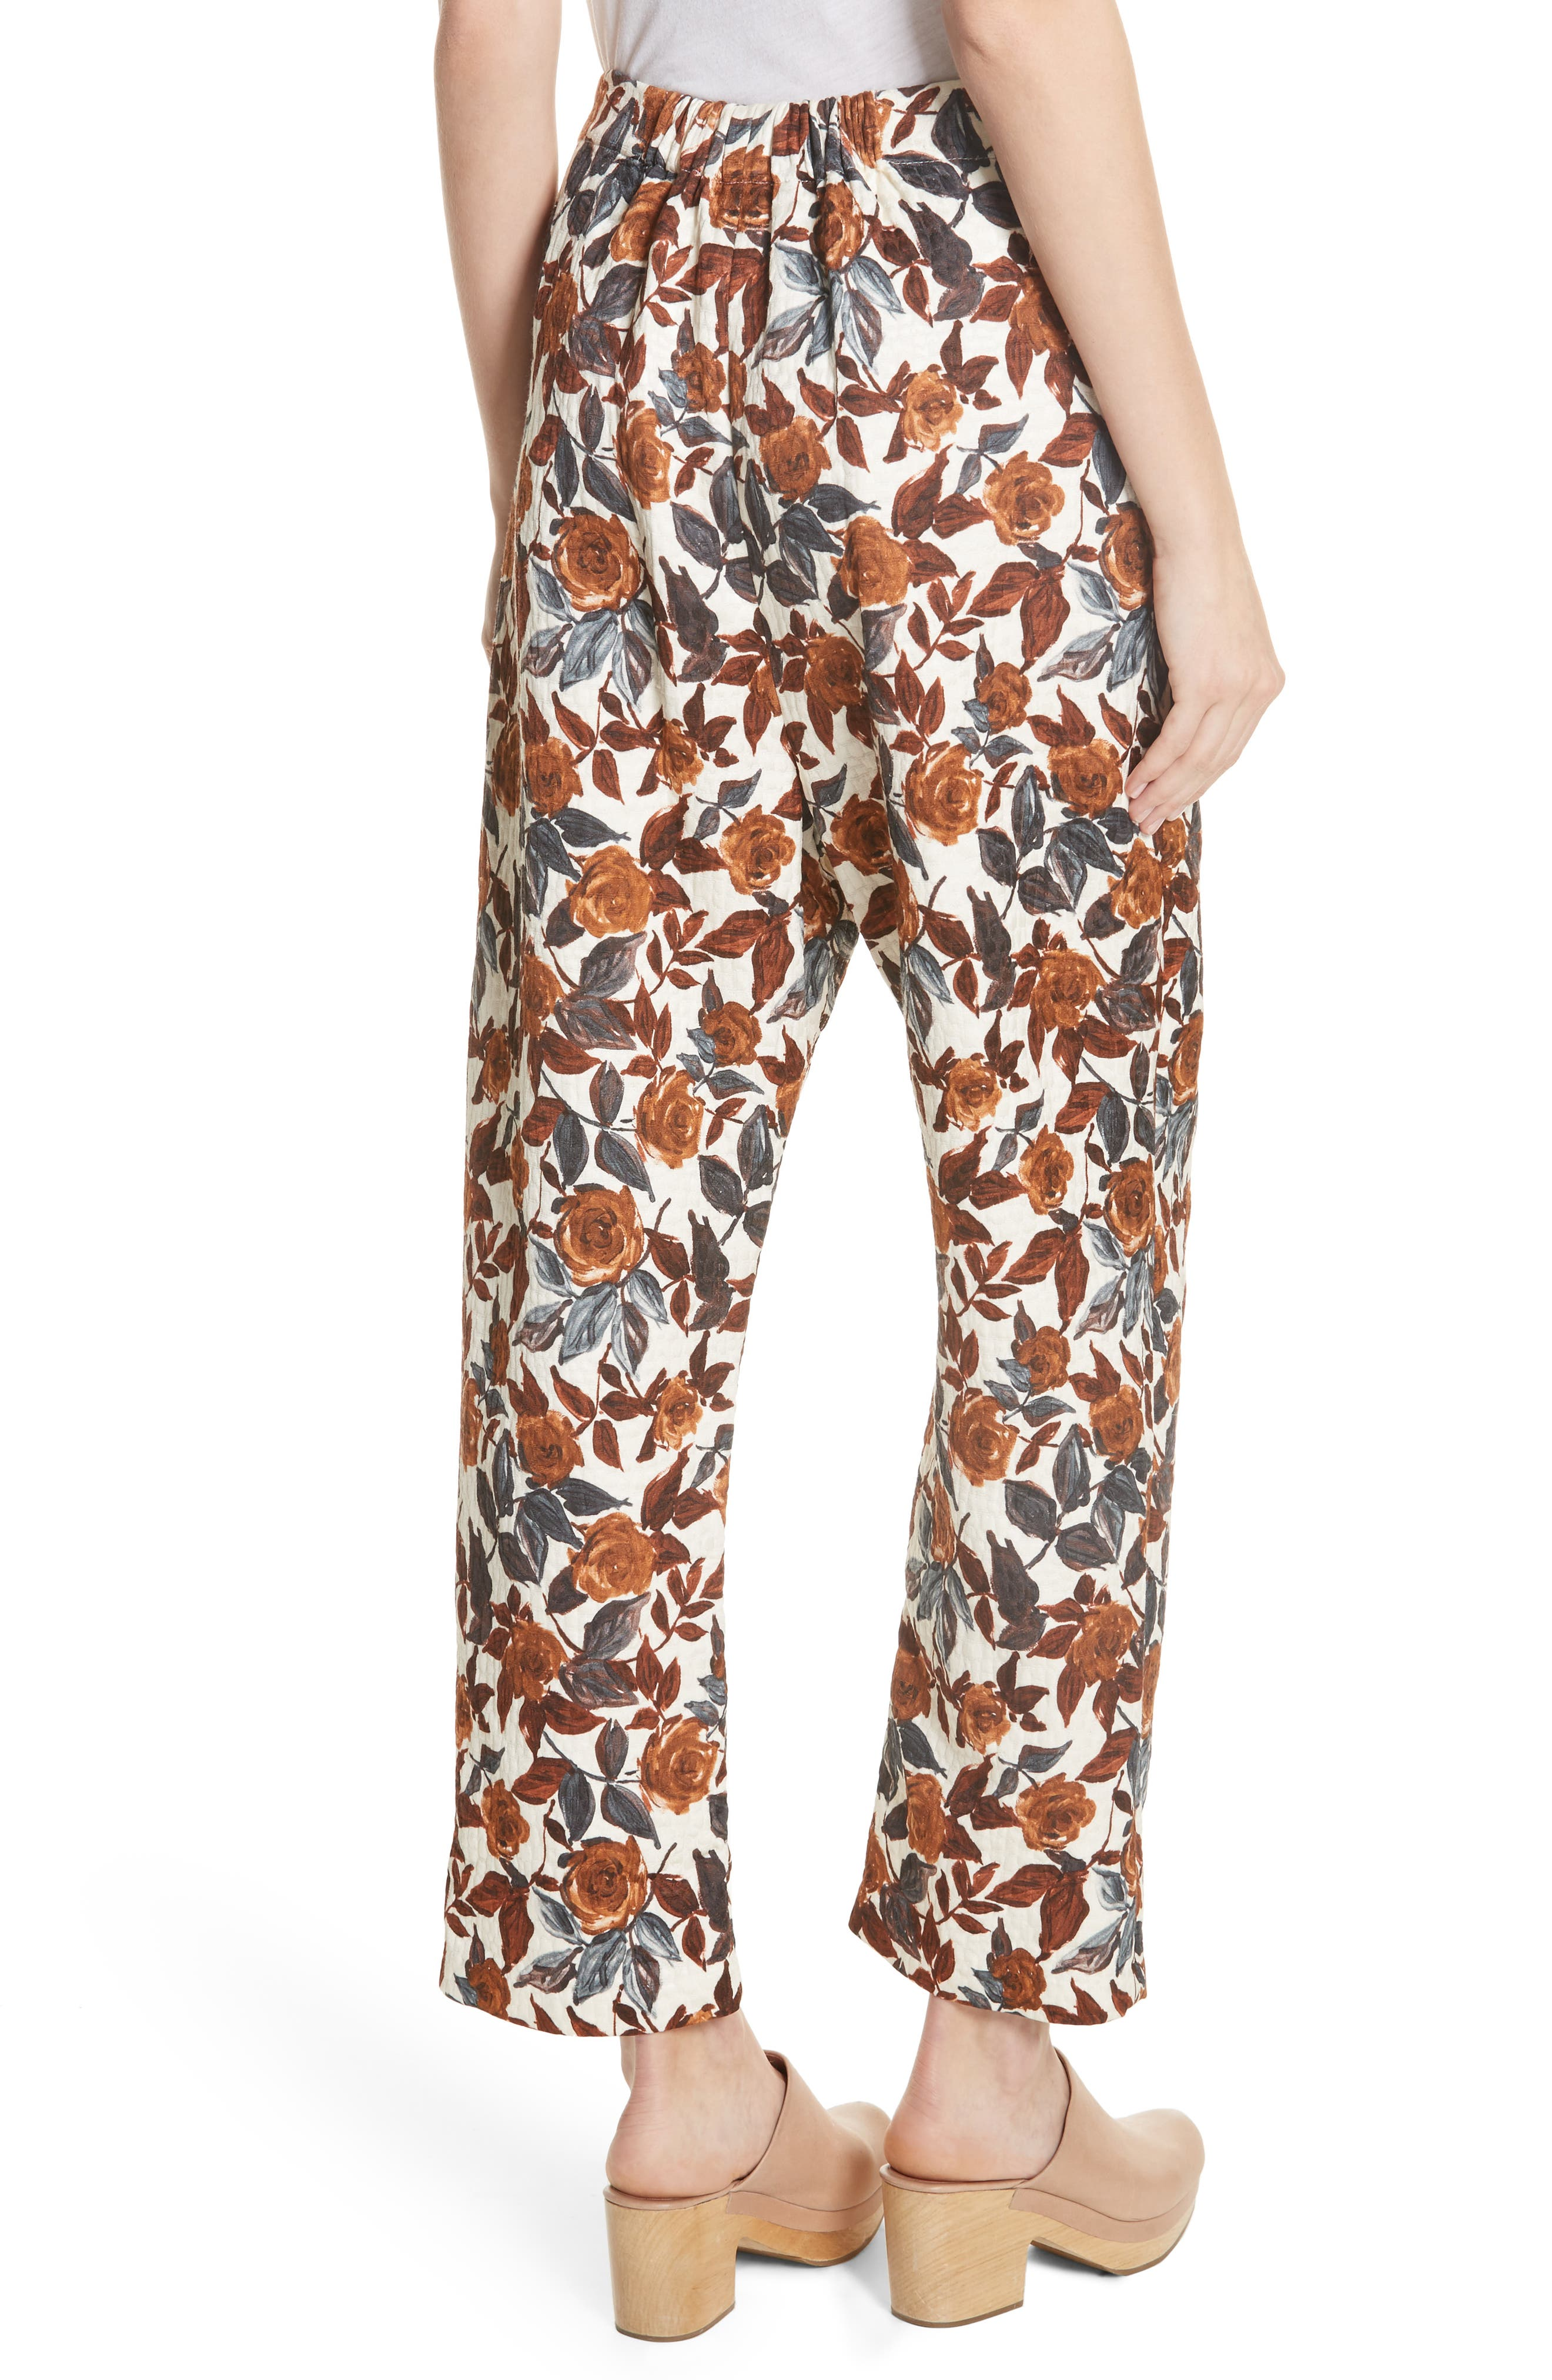 Barrie Floral Print Pants,                             Alternate thumbnail 2, color,                             BROWN